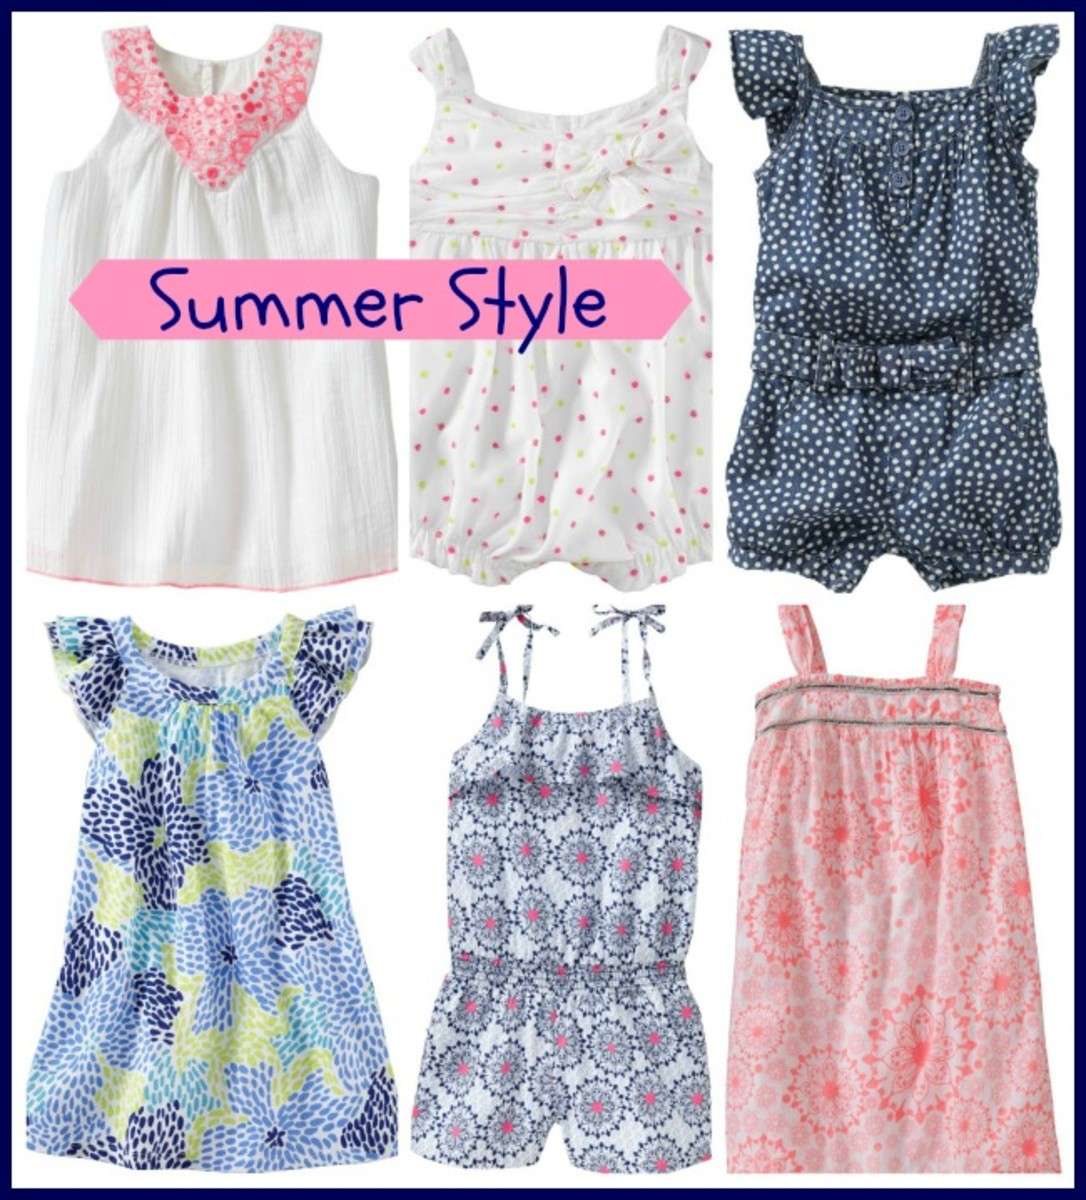 old navy, summer style, sundresses, rompers